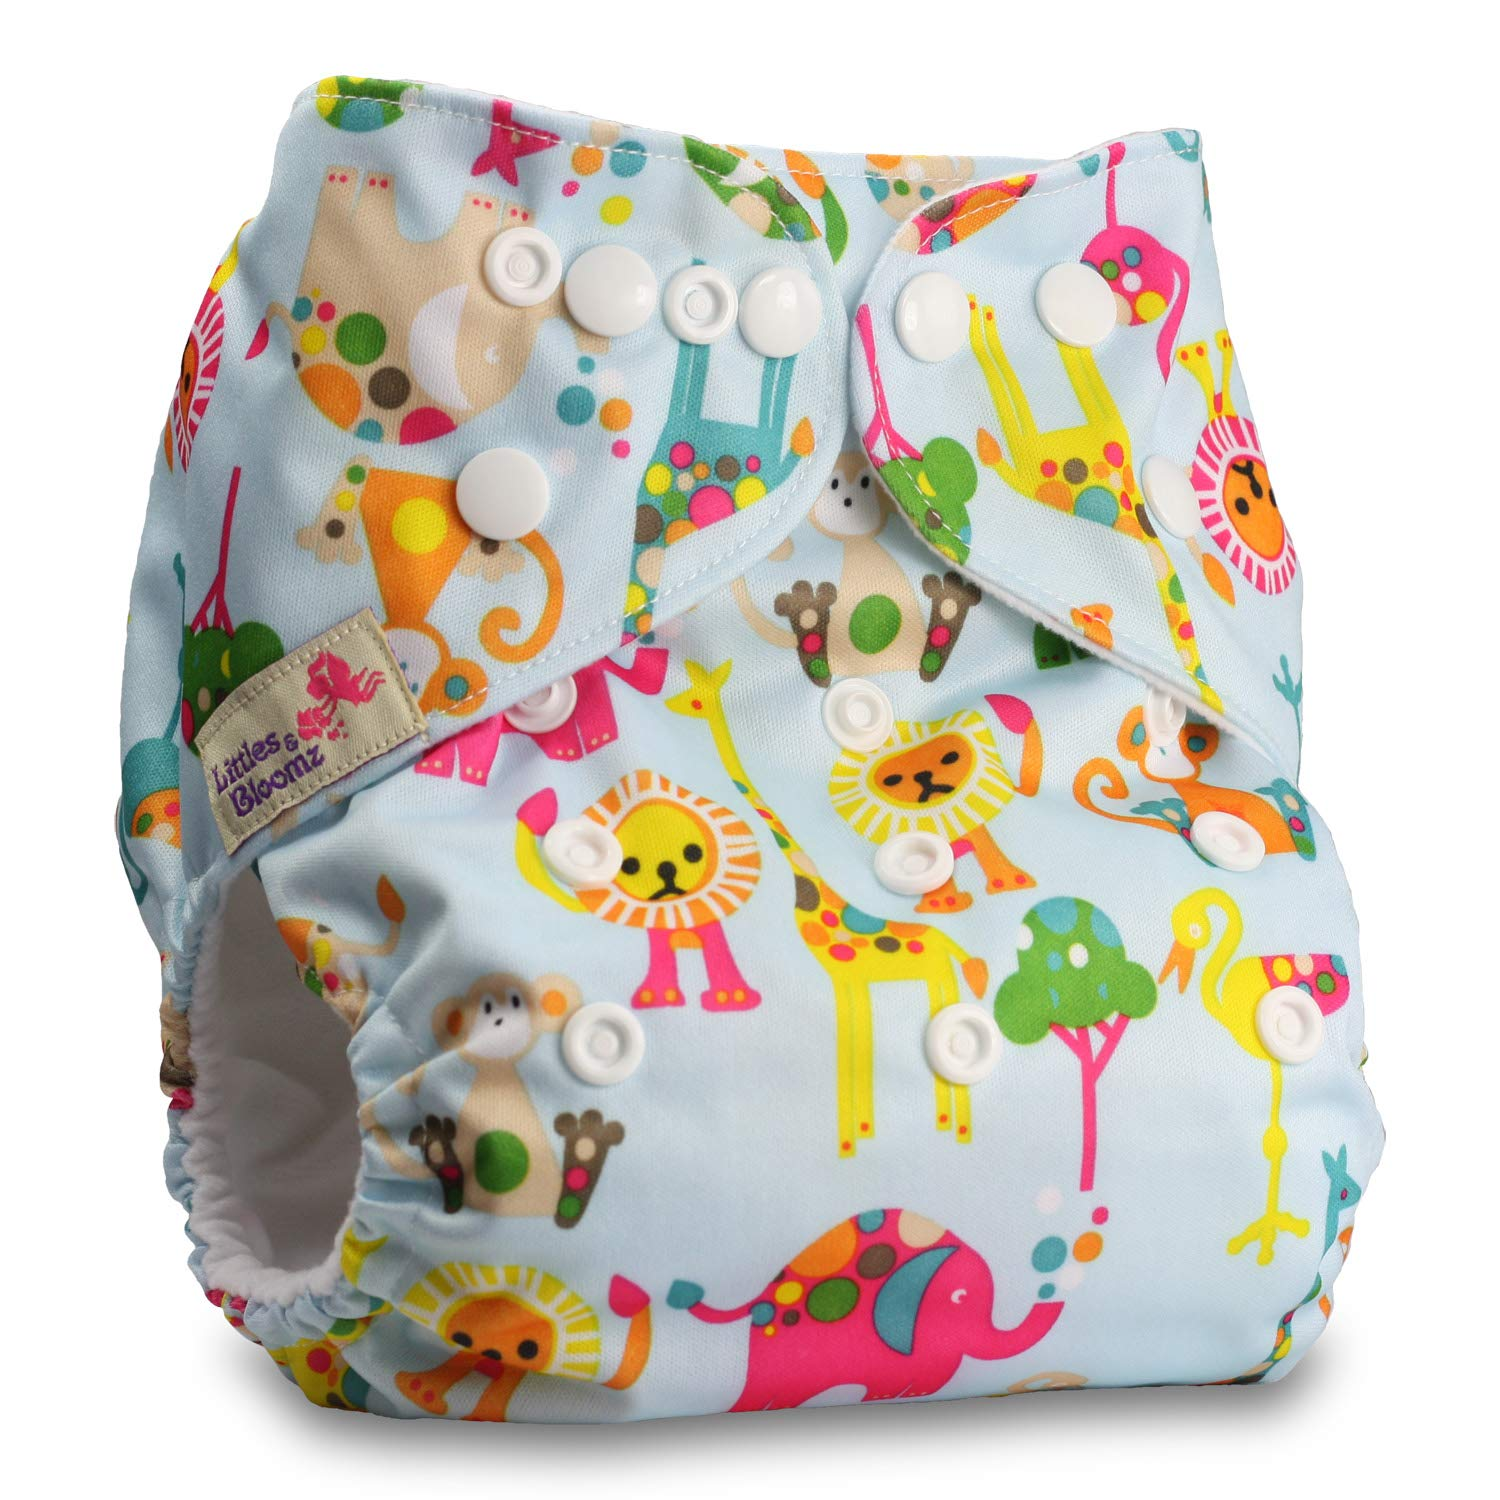 Littles & Bloomz, Reusable Pocket Cloth Nappy, Fastener: Popper, Set of 1, Pattern 25, With 1 Microfibre Insert